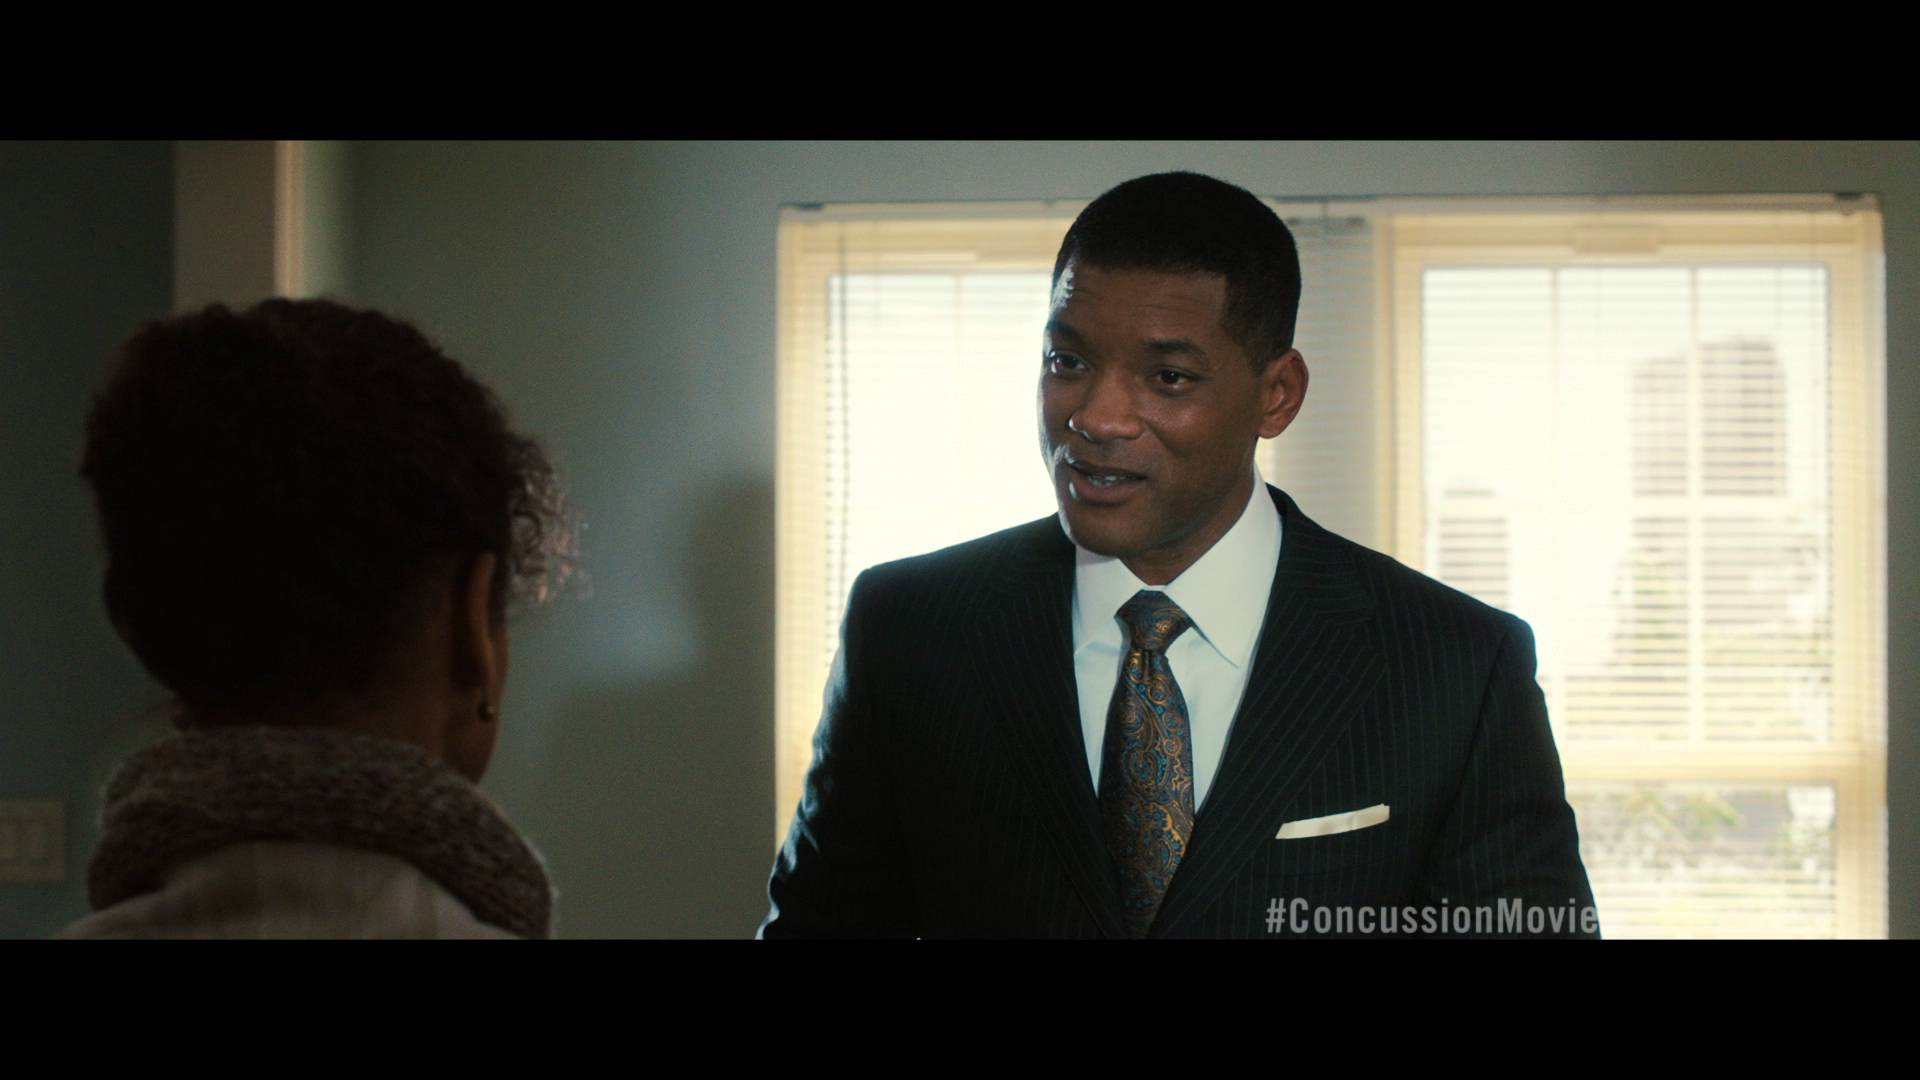 Concussion – An American Hero (ft Will Smith)